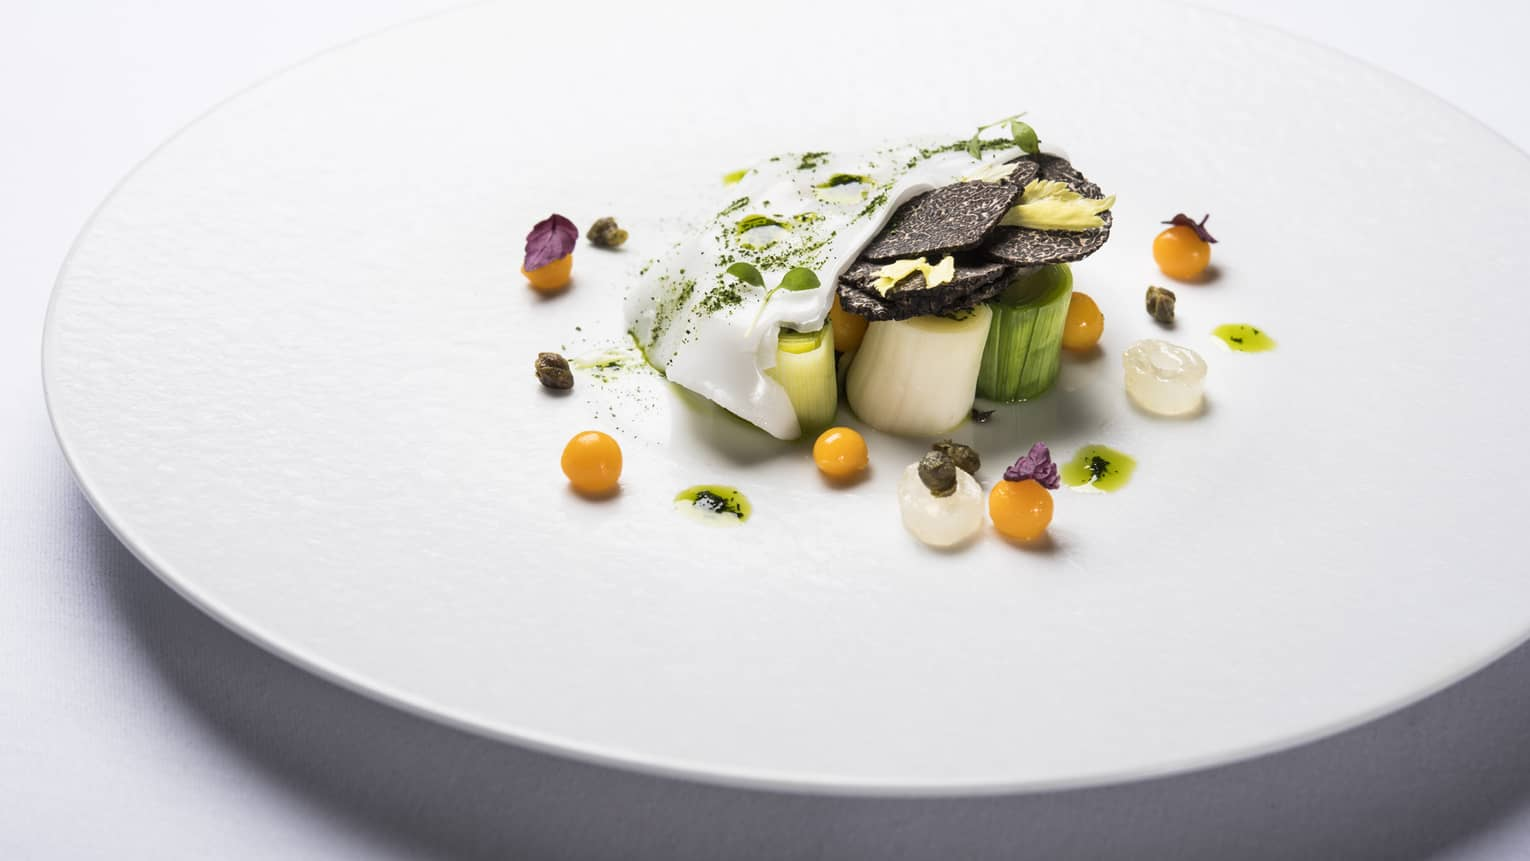 Artistic Michelin-Star entree arranged on white plate